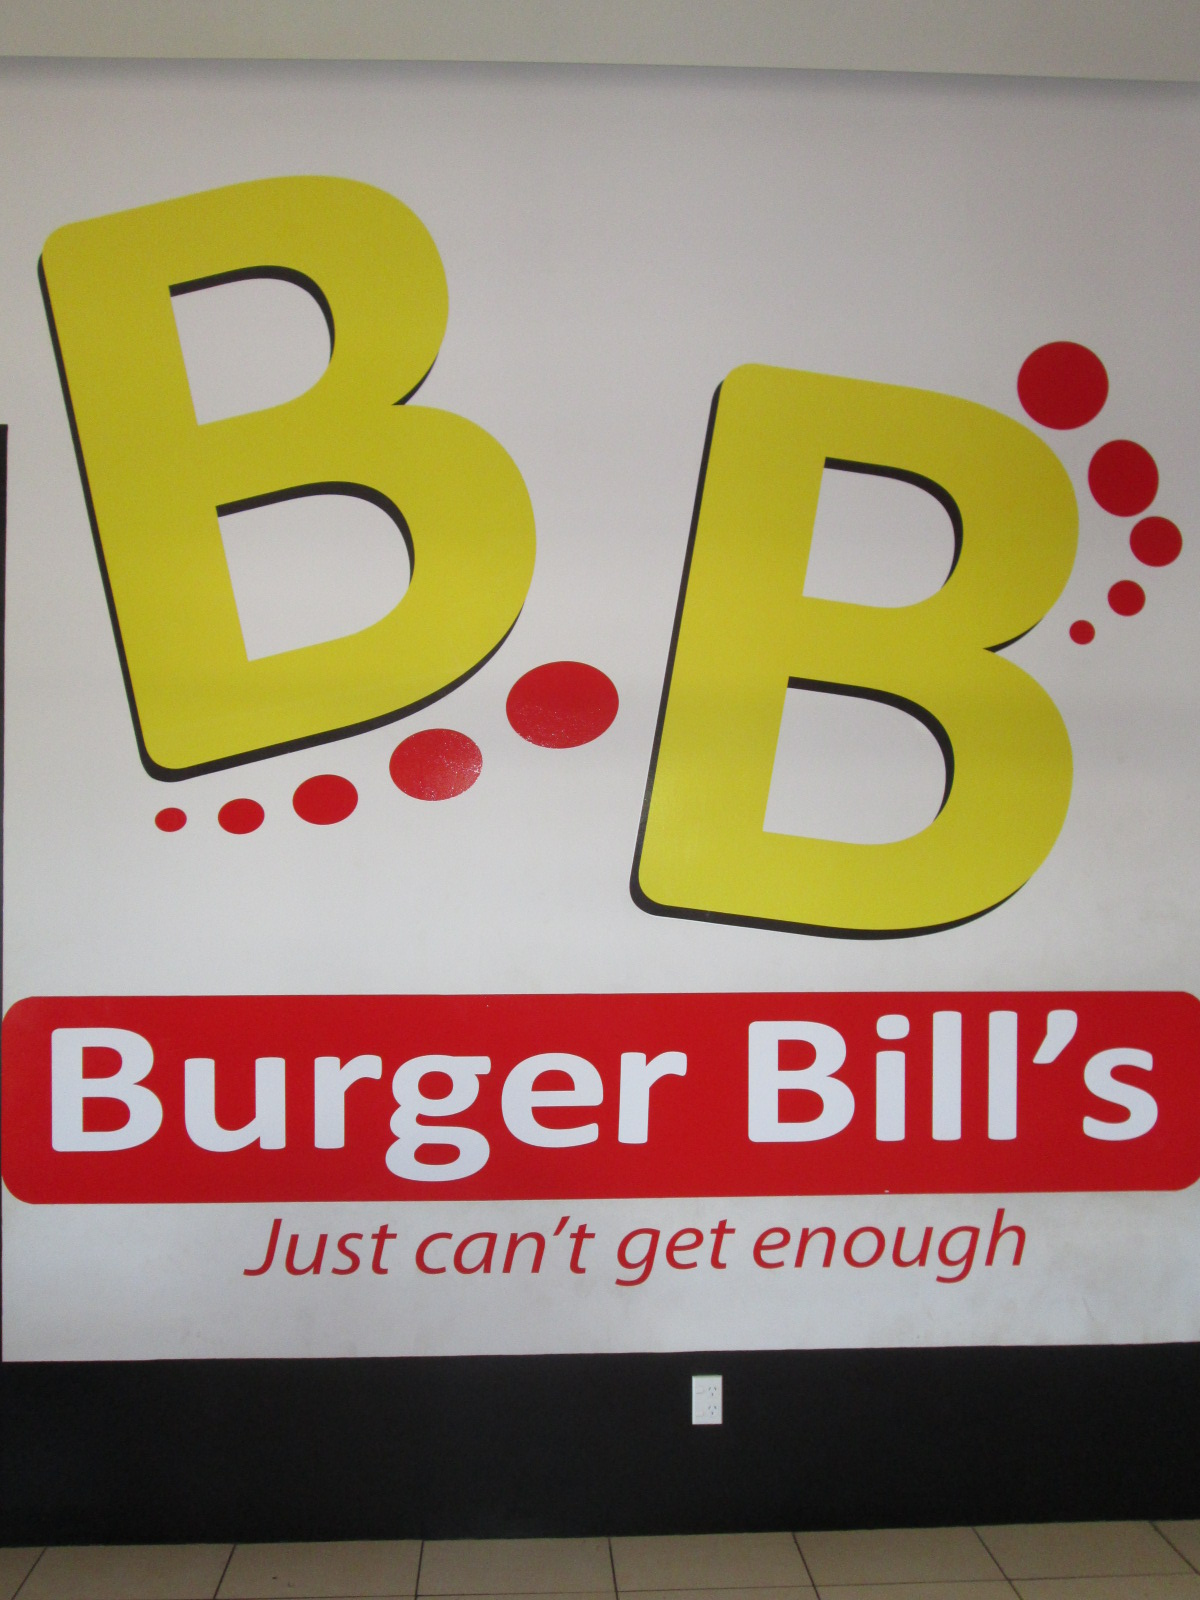 Words from the South Pacific: Who\'s Burger Bill?